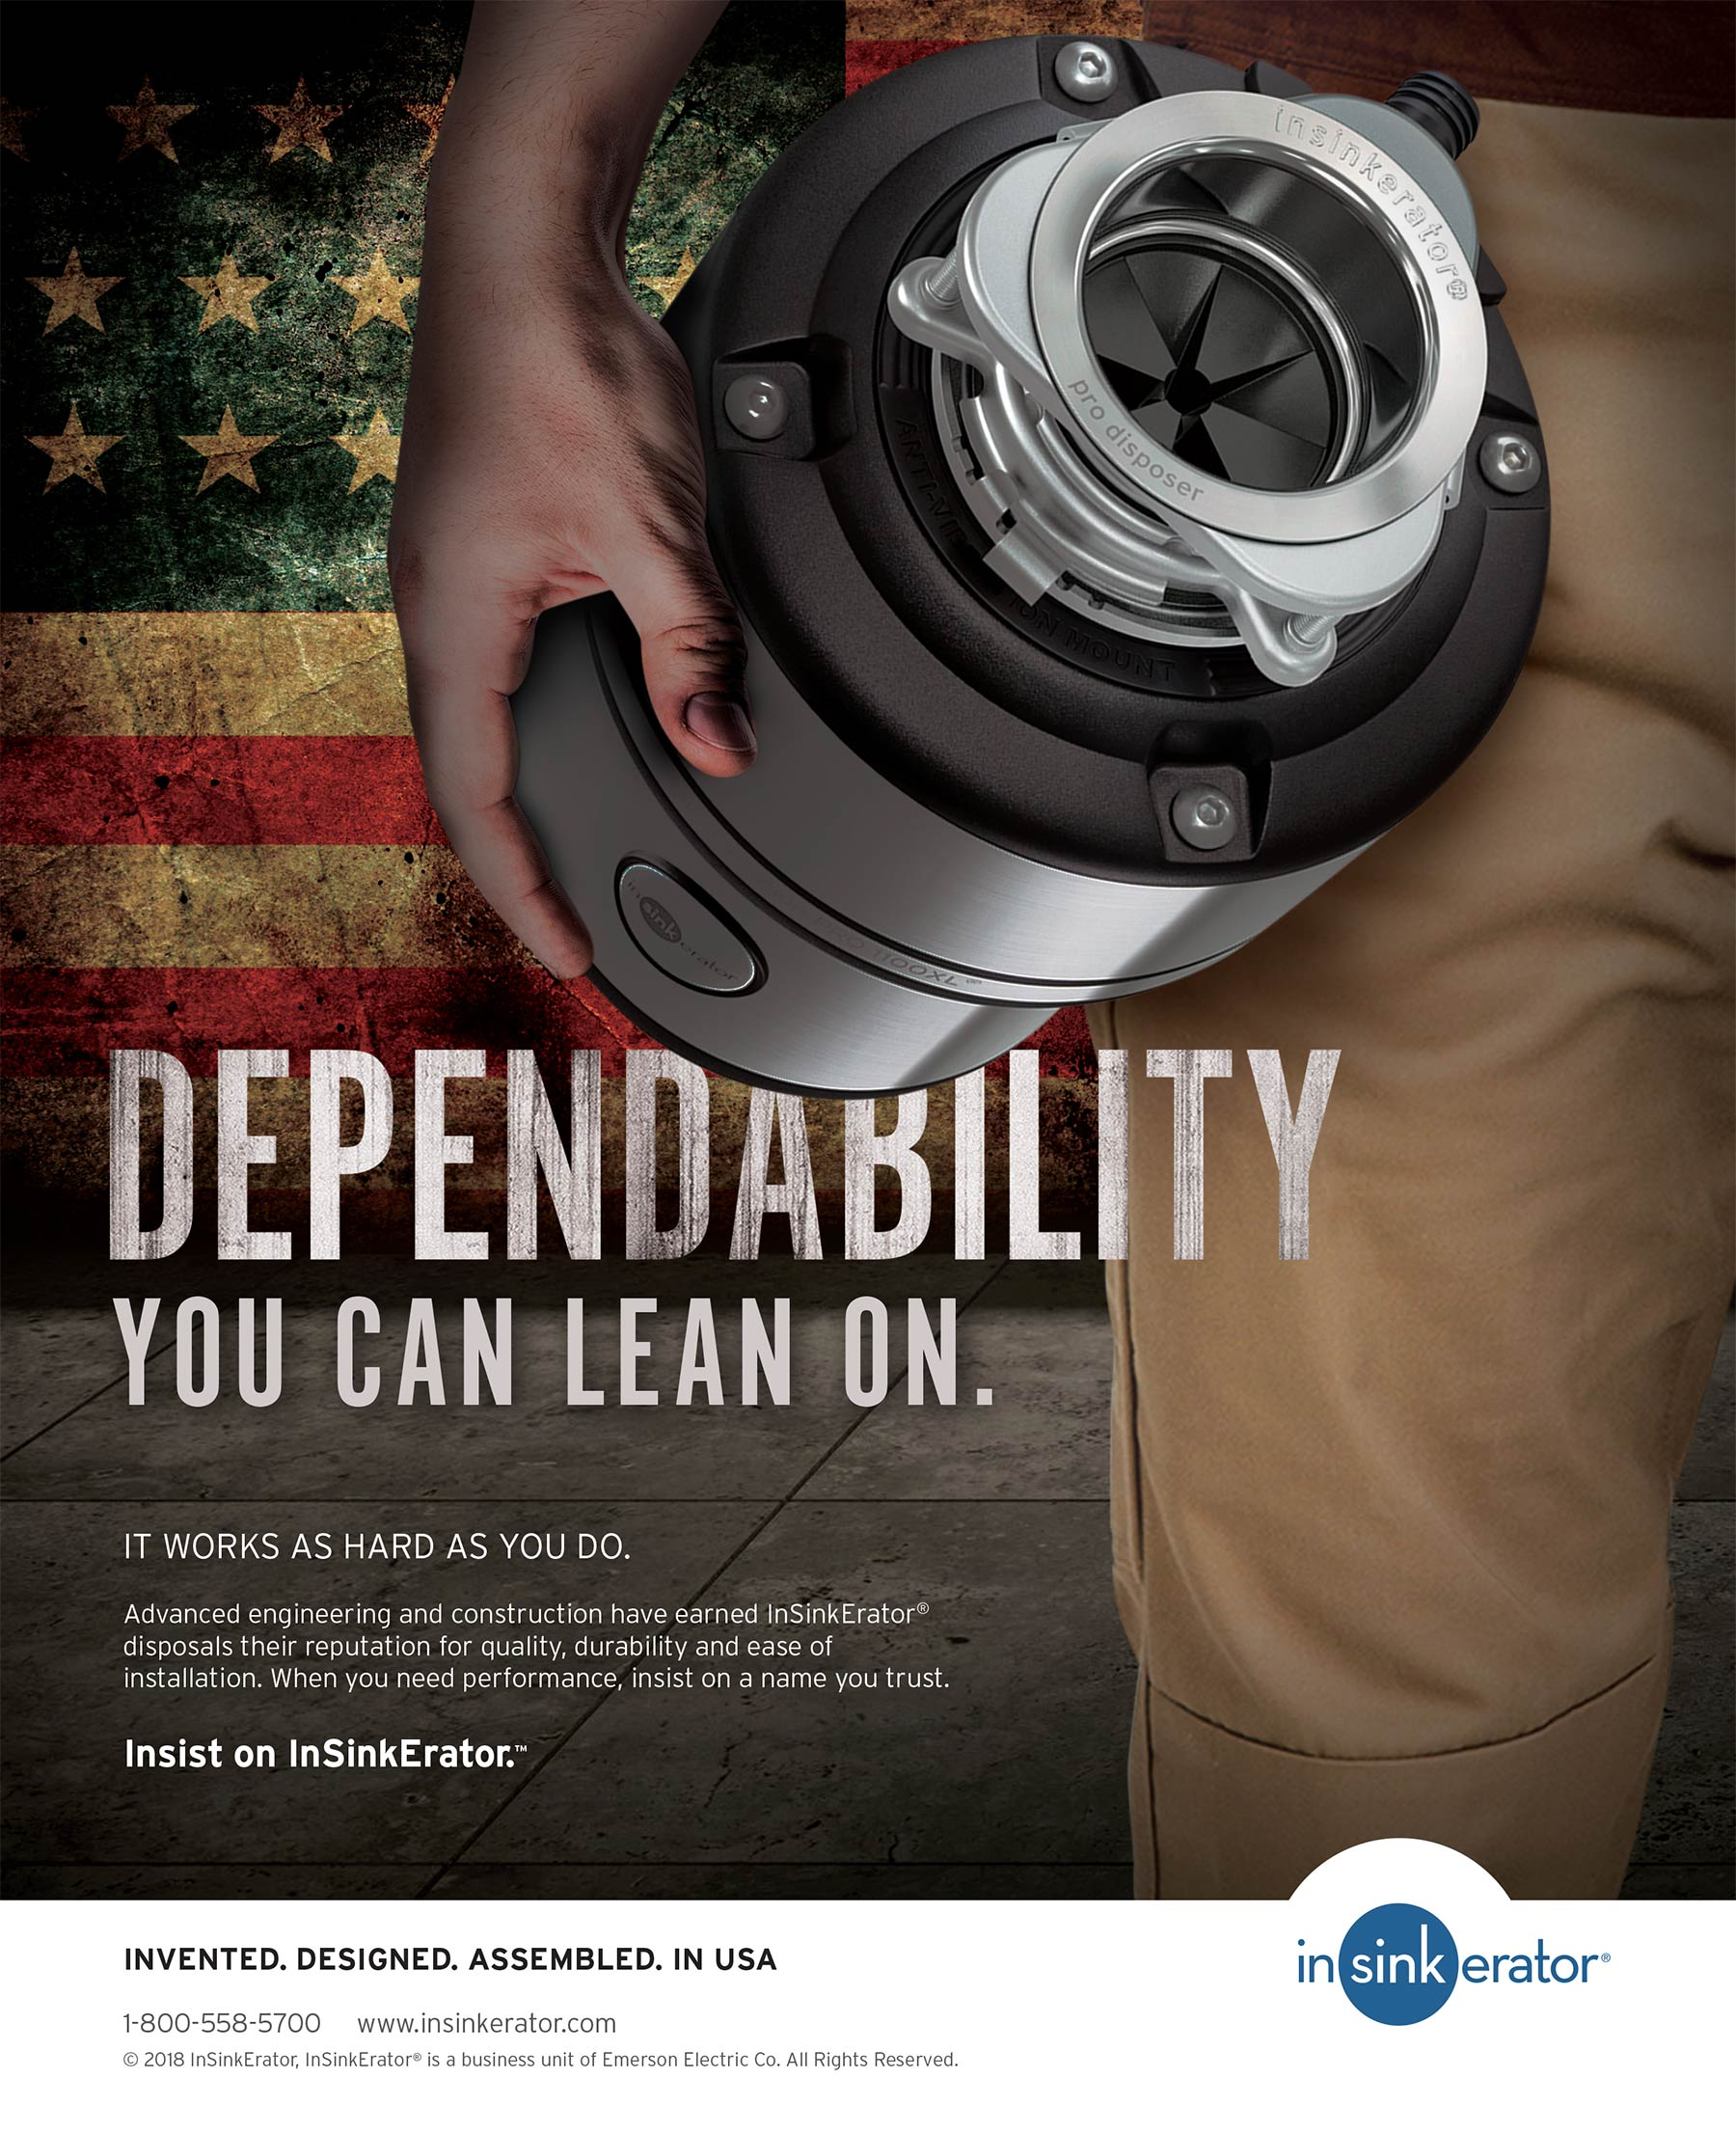 Dependability you can lean on. It works as hard as you do. Advanced engineering and construction have earned InSinkErator® disposals their reputation for quality, durability and ease of installation. When you need performance, insist on a name you trust. Insist on InSinkErator™ Invented. Designed. Assembled. In USA